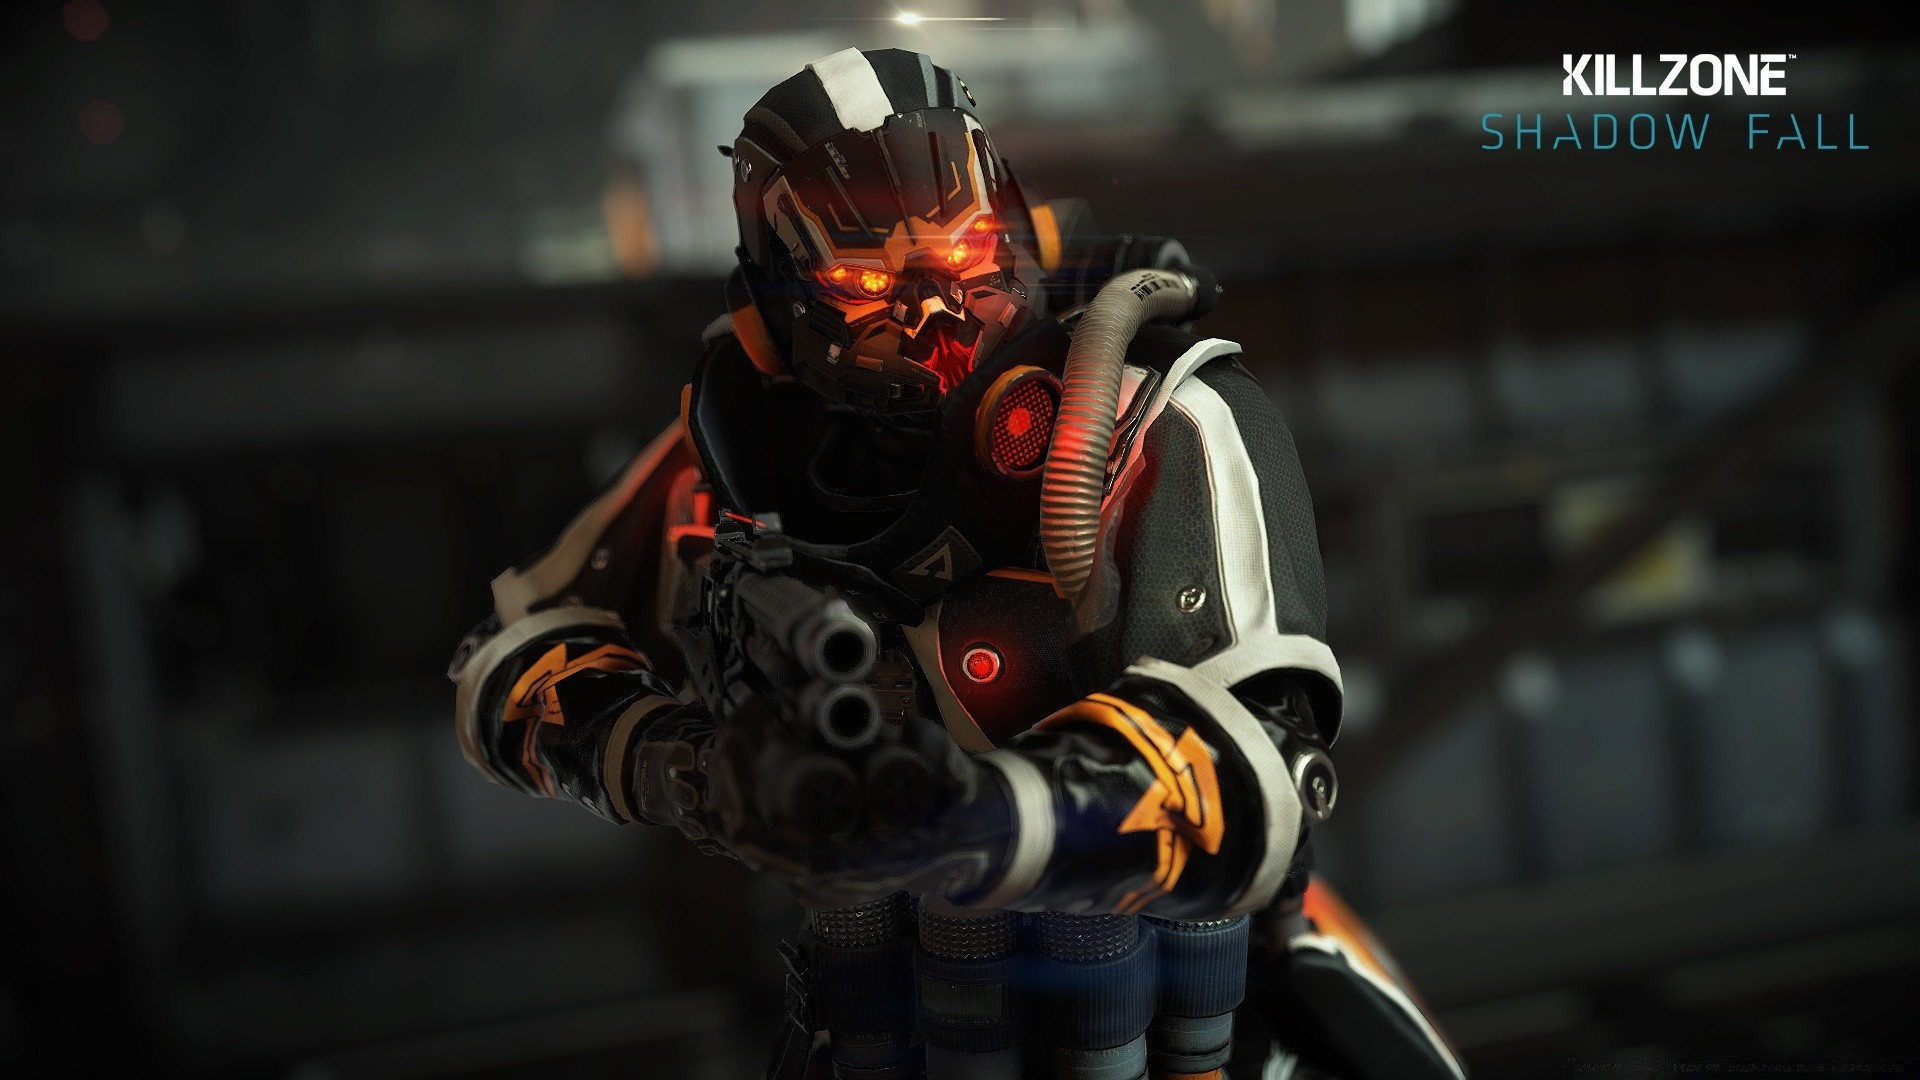 Helghast infantry killzone shadow fall android wallpapers for free voltagebd Gallery